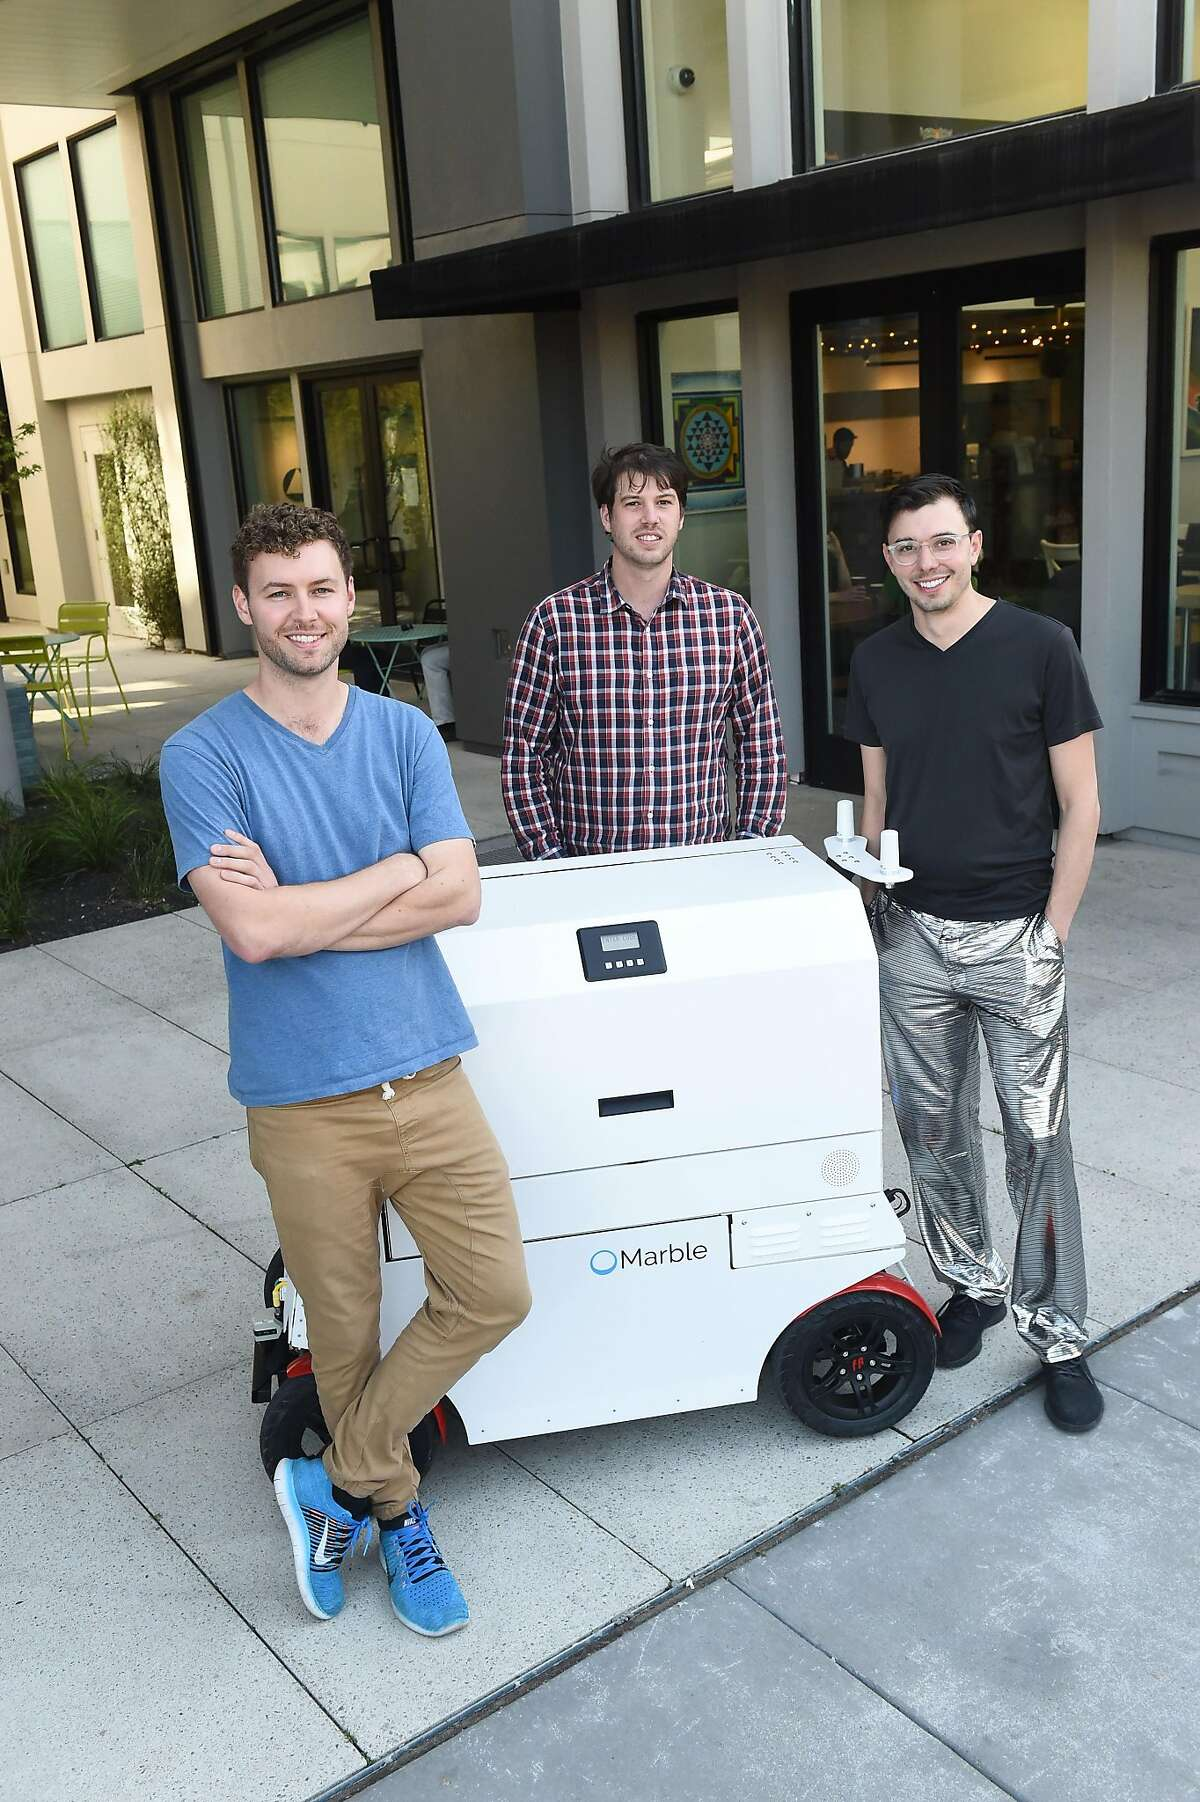 From left: Matt Delaney, Kevin Peterson and Jason Calaiaro, pose for a photo in front of one of their robots on March 28, 2017. They are co-founders of the start up company Marble which makes robots to deliver food and other items.